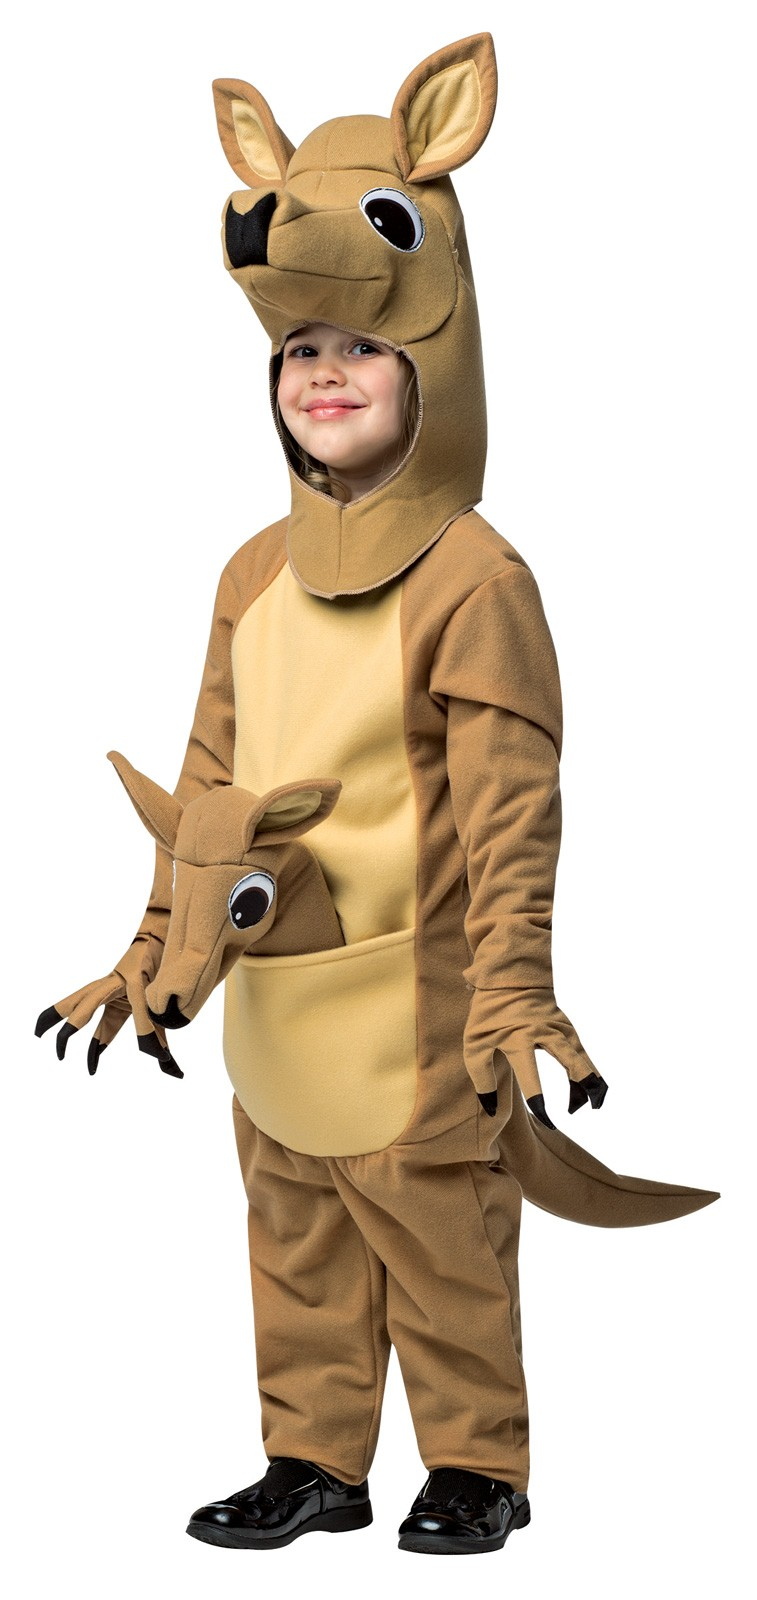 Wide range of Book Week Costumes. Australia's top online costume shop. Free & Express delivery available. Easy returns. Book Week is an Australia wide event that happens every year with a different theme chosen by the Children's Book Council of Australia.